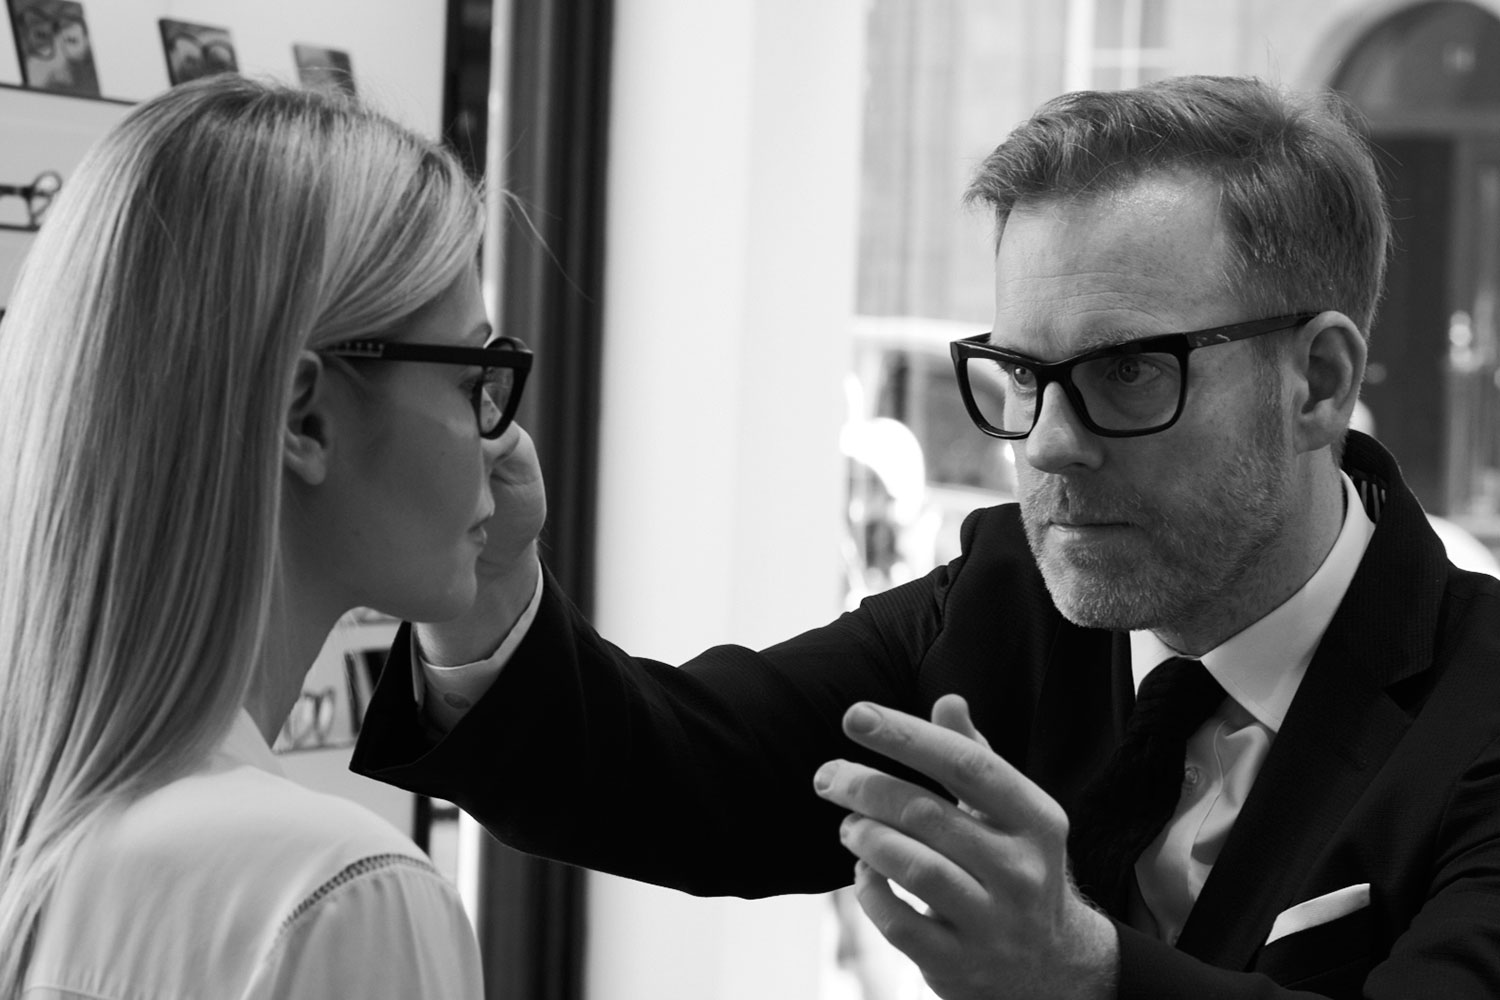 Bespoke eyewear designer Tom Davies during a bespoke consultation with a female customer